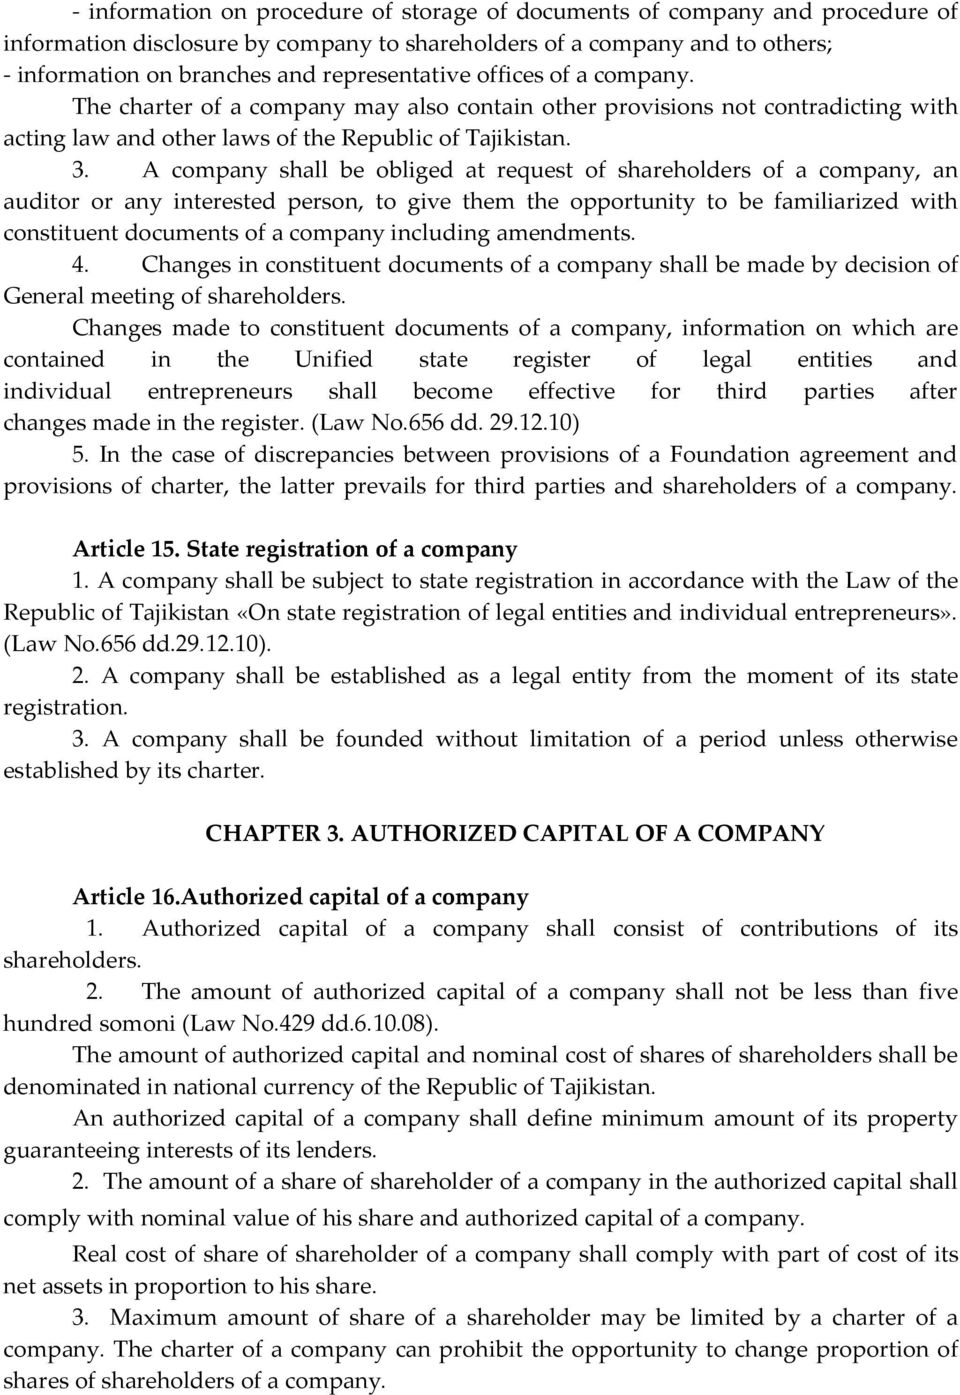 A company shall be obliged at request of shareholders of a company, an auditor or any interested person, to give them the opportunity to be familiarized with constituent documents of a company